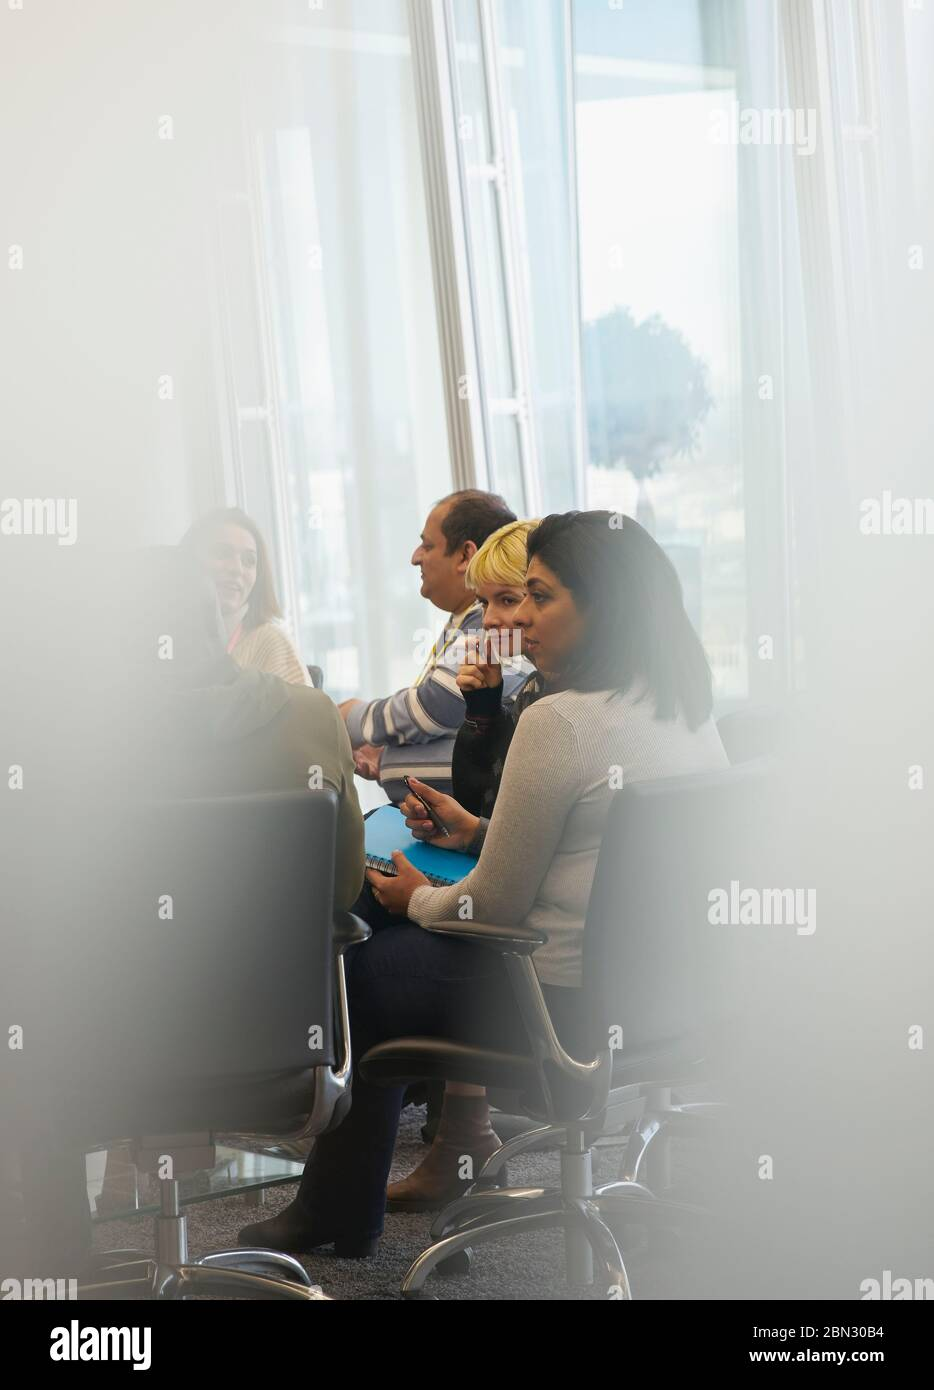 Business people talking in conference room meeting Stock Photo